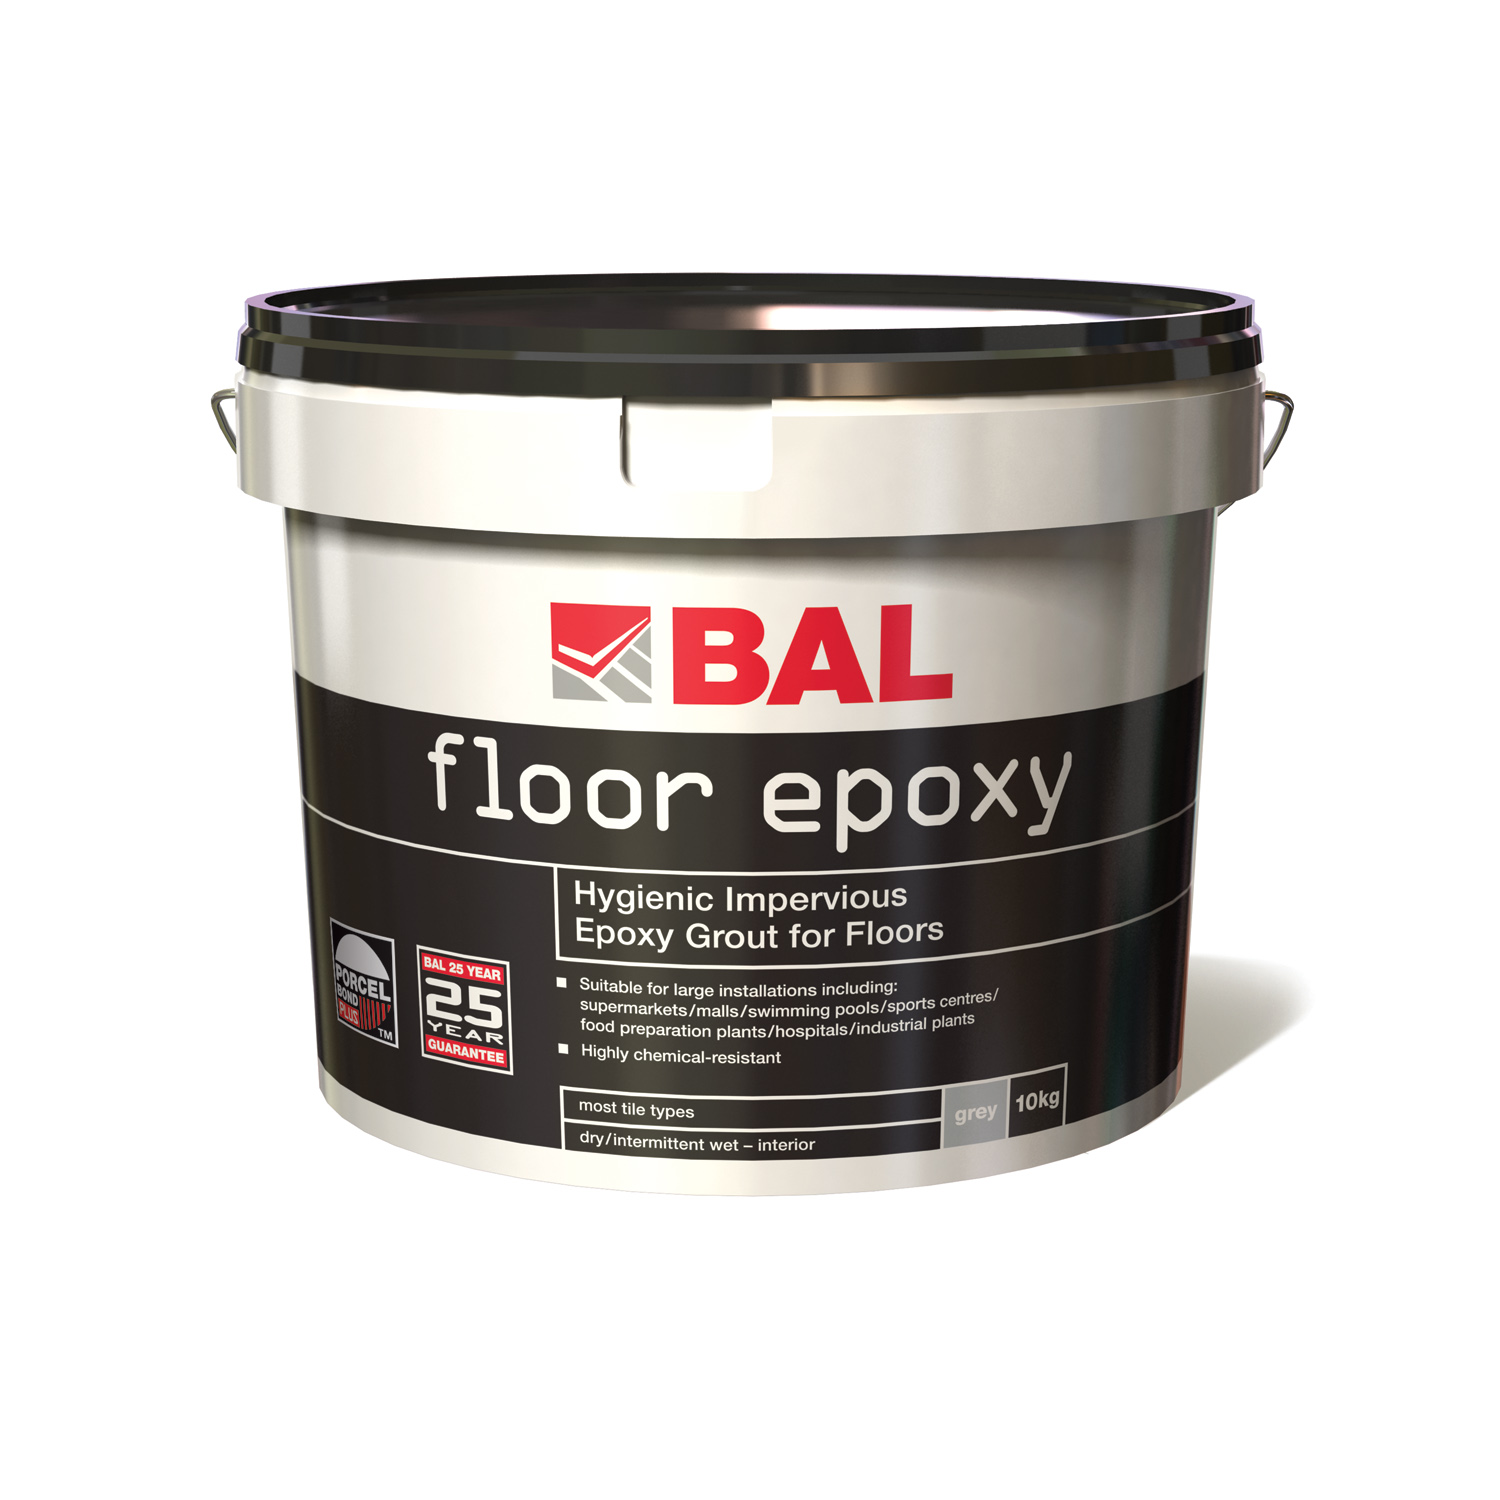 BAL launch a new improved epoxy grout